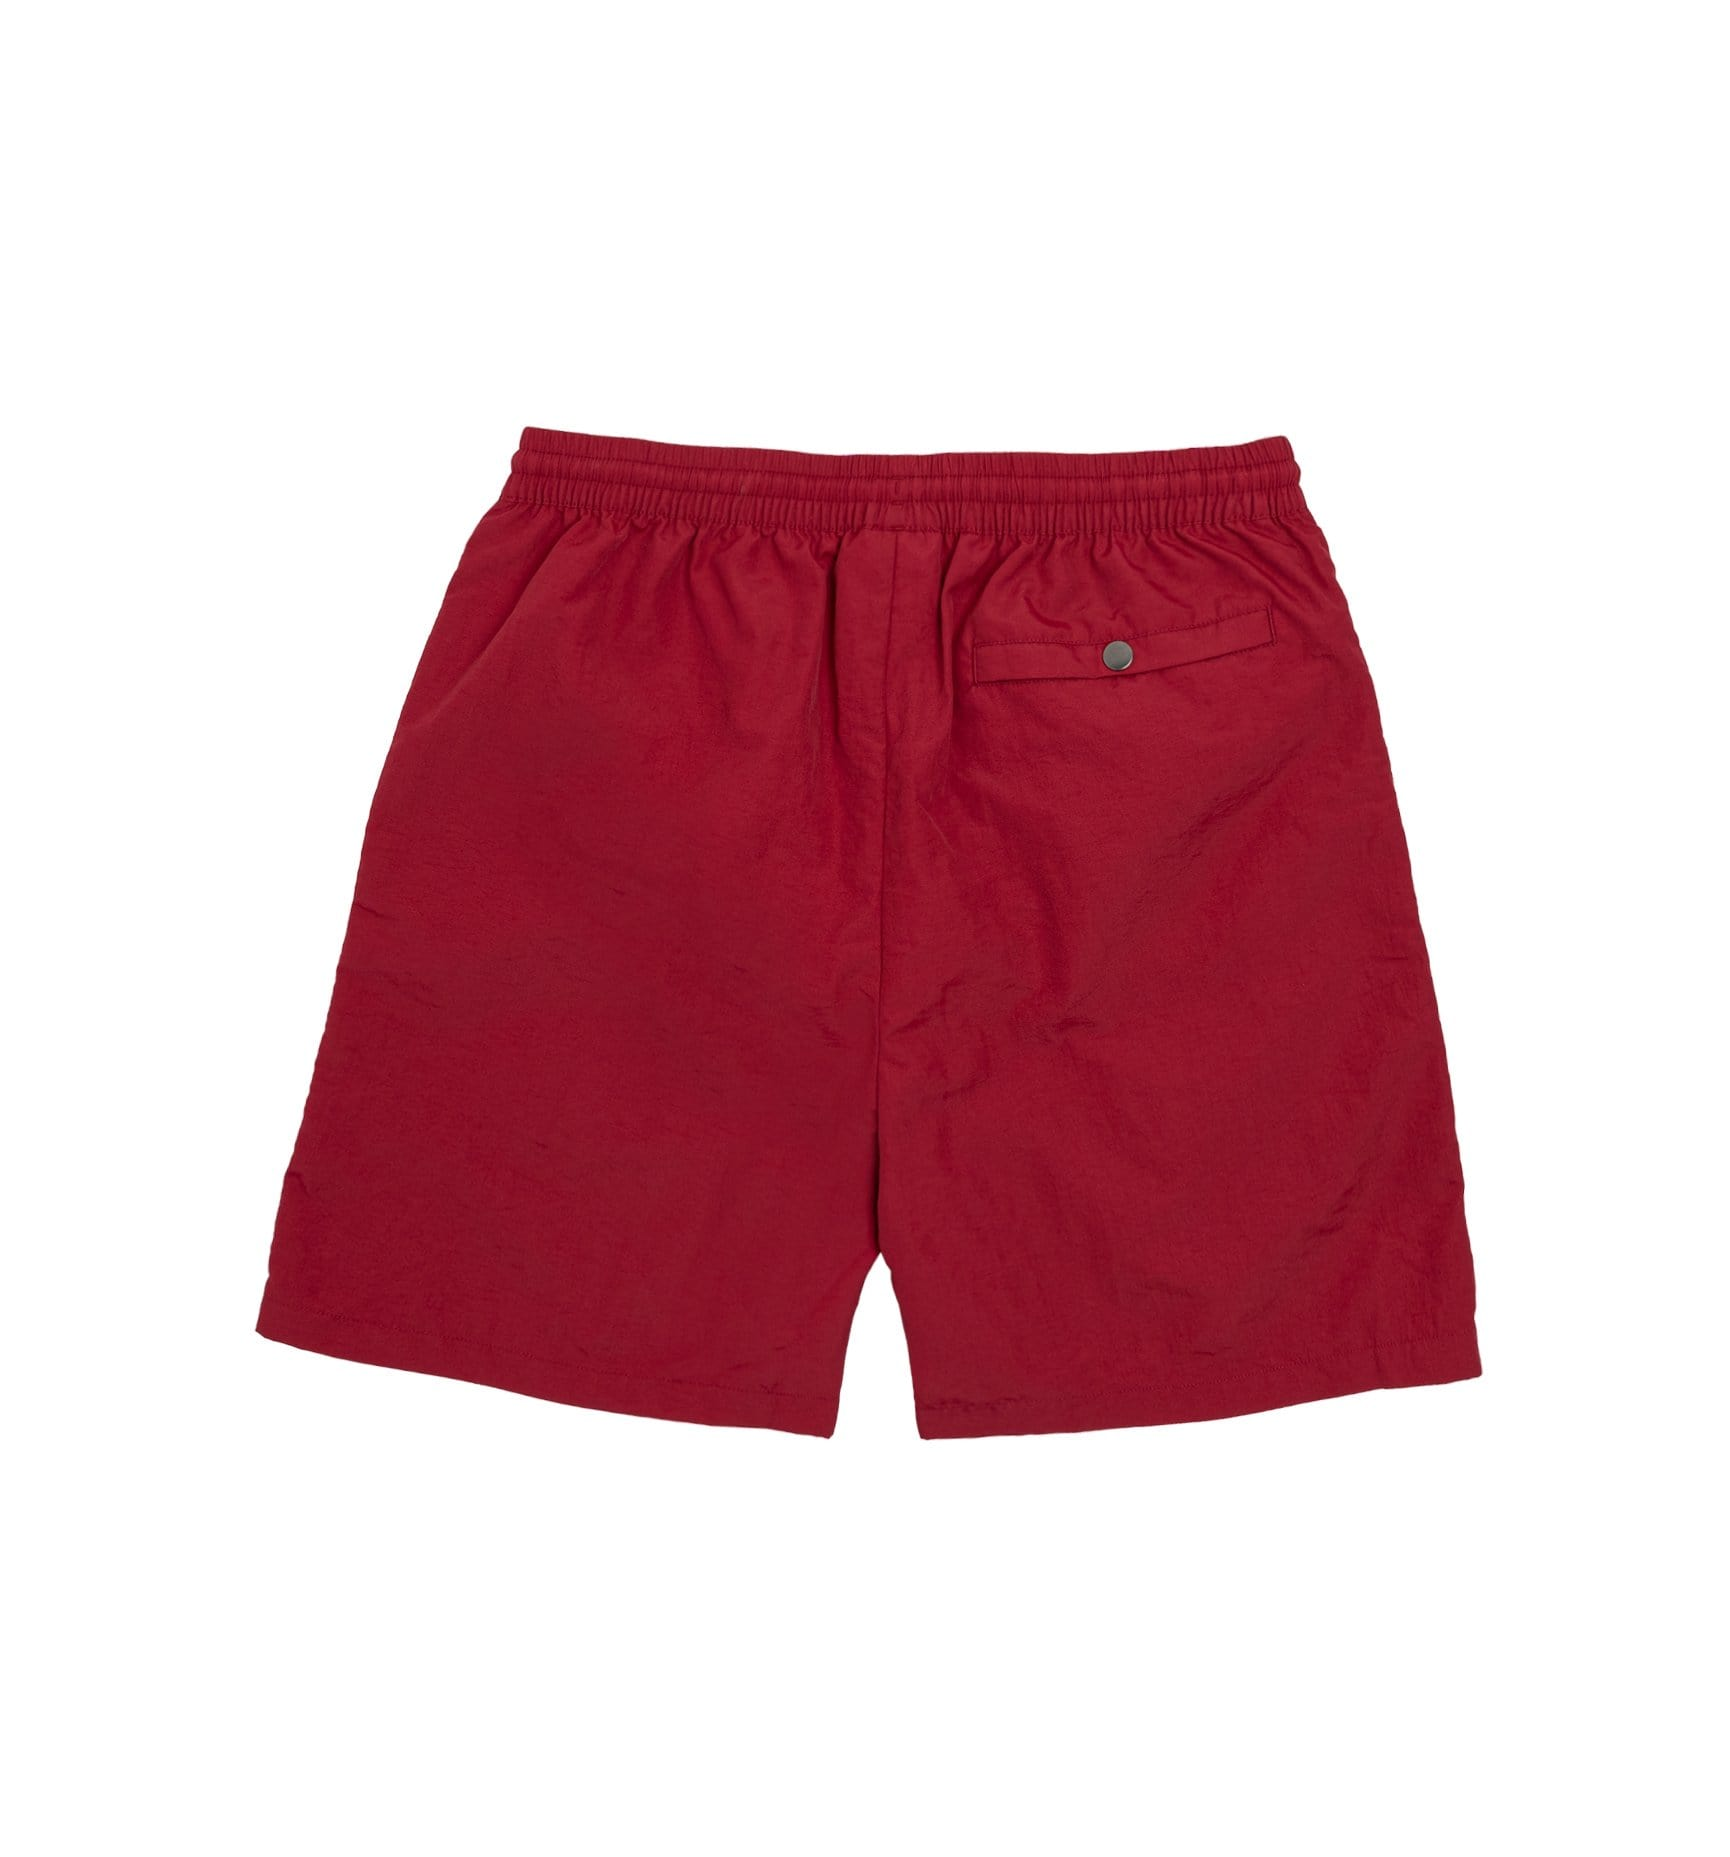 Alife Swim/Run Nylon Shorts - Maroon